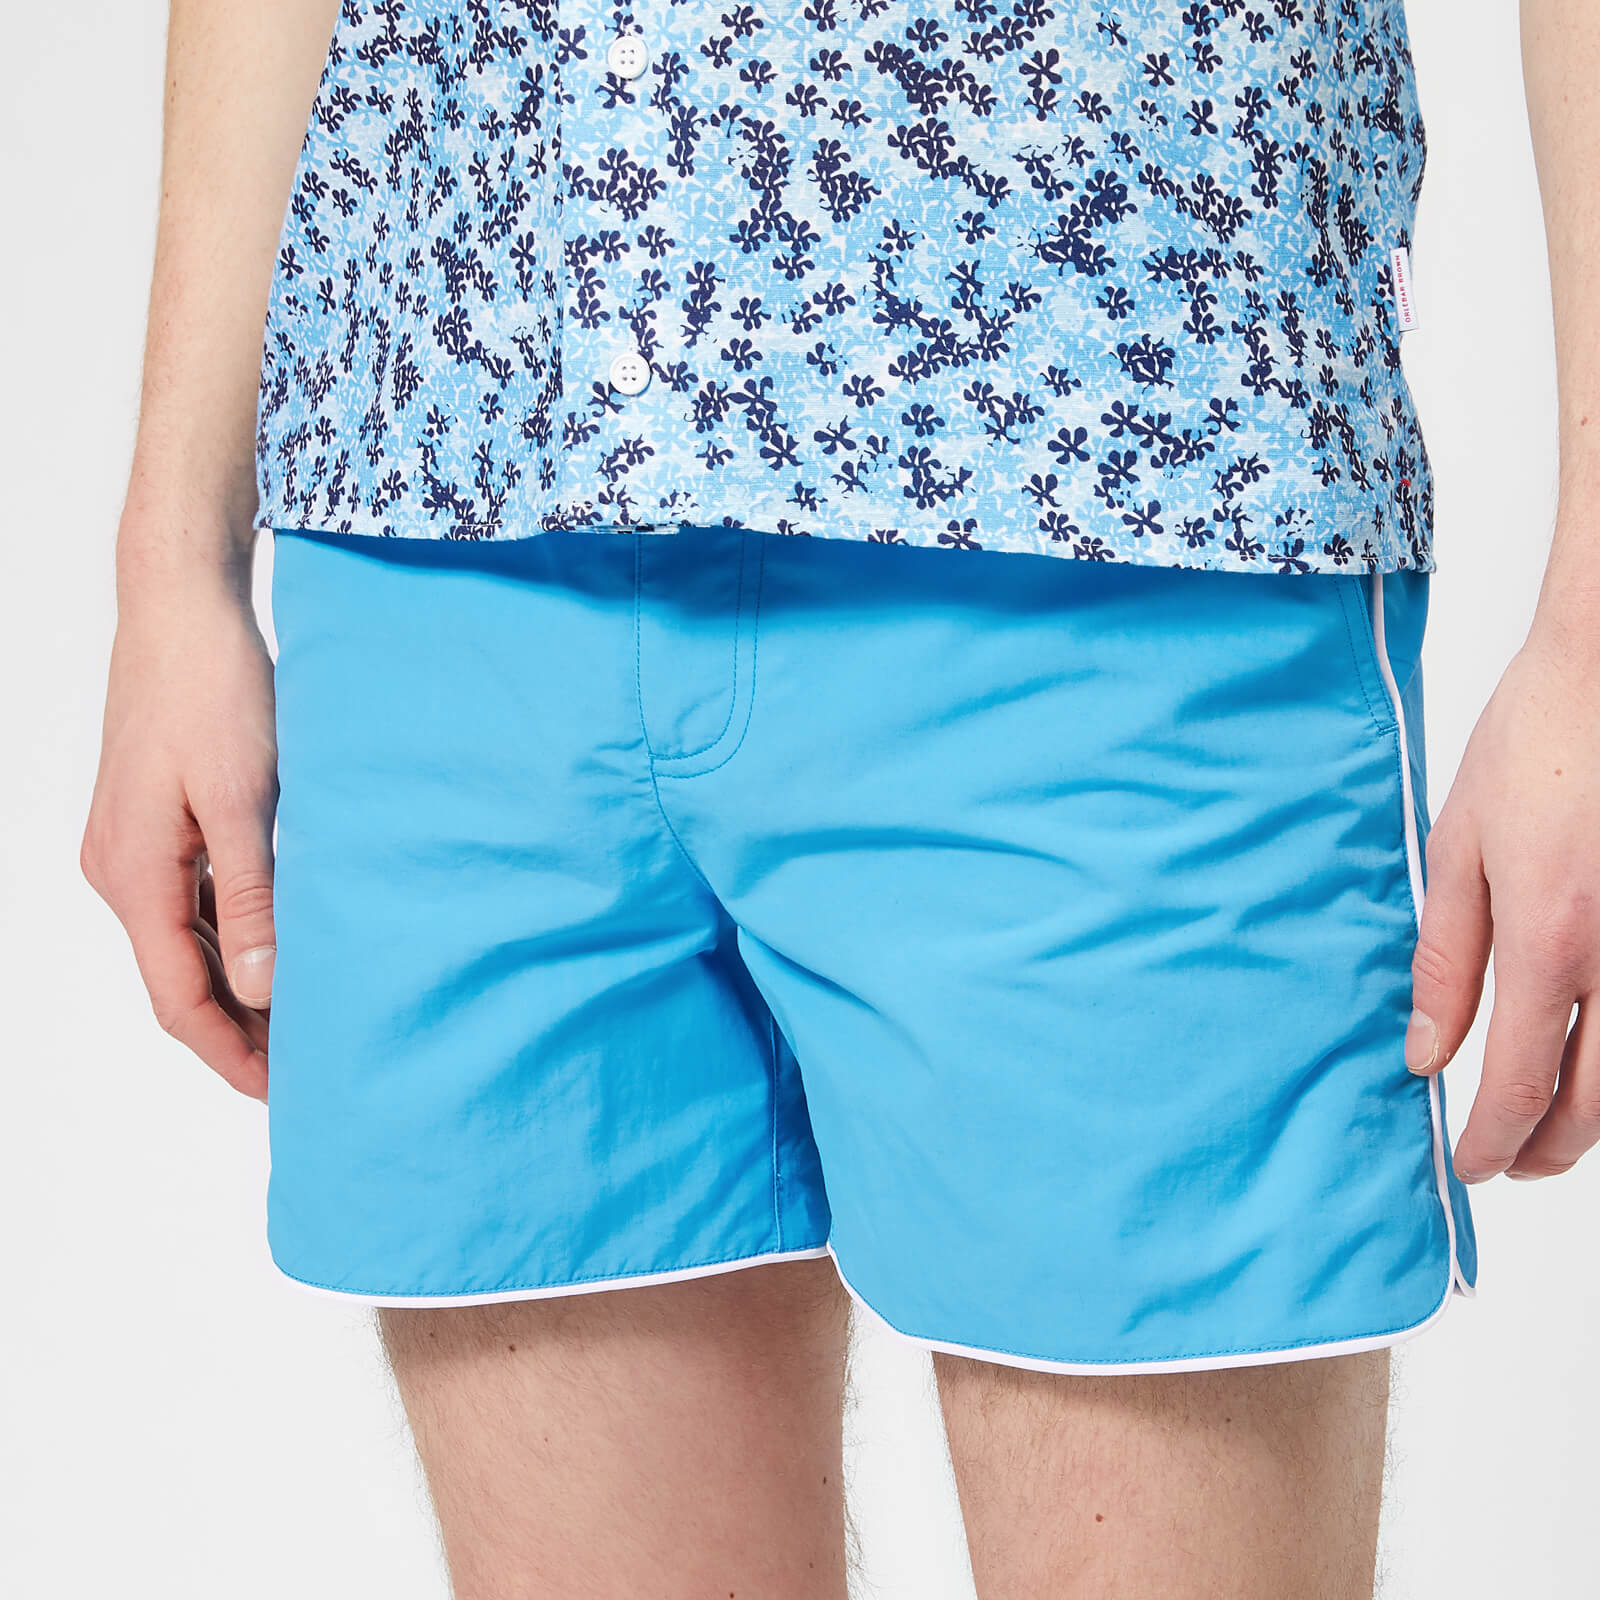 5c799c1e15 Orlebar Brown Men's Setter Piping Swim Shorts - Bahama Blue/White - Free UK  Delivery over £50